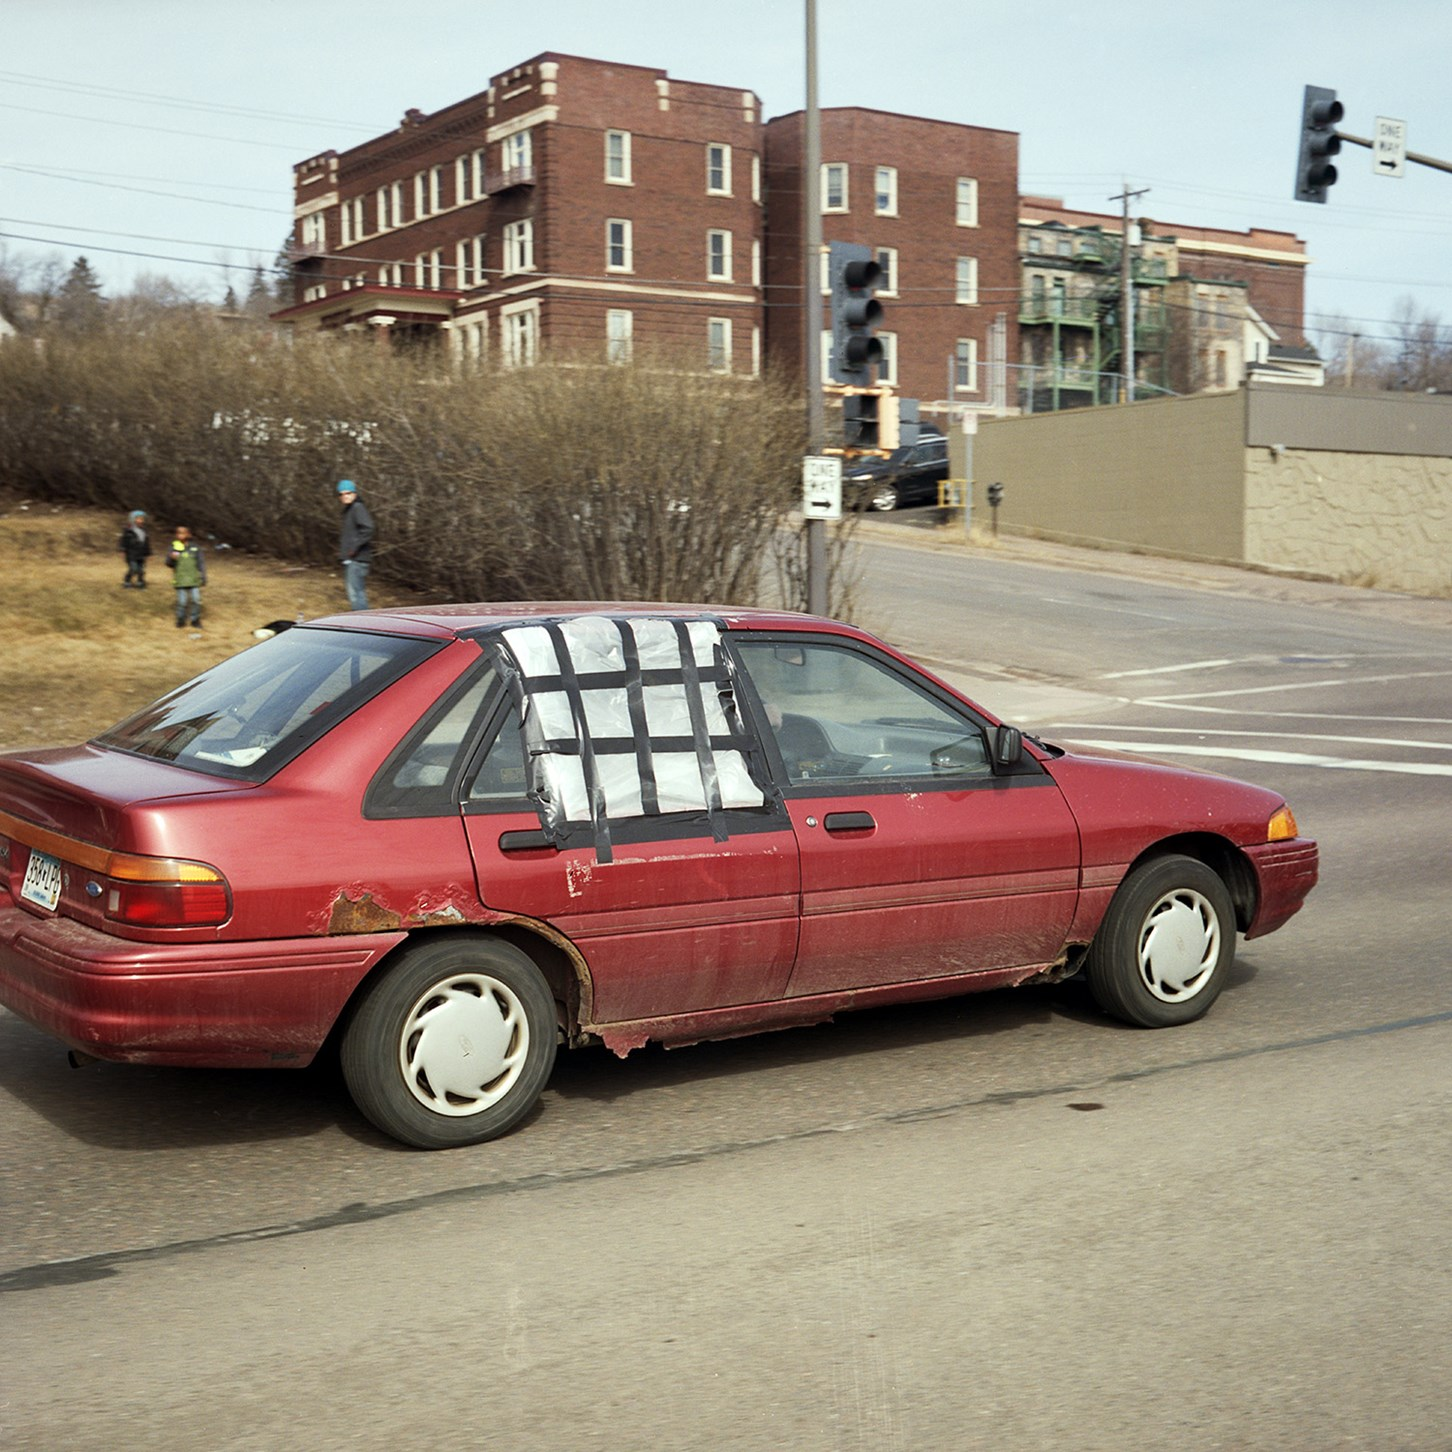 Passing Car With Plastic Window, Duluth, Minnesota, March 2017